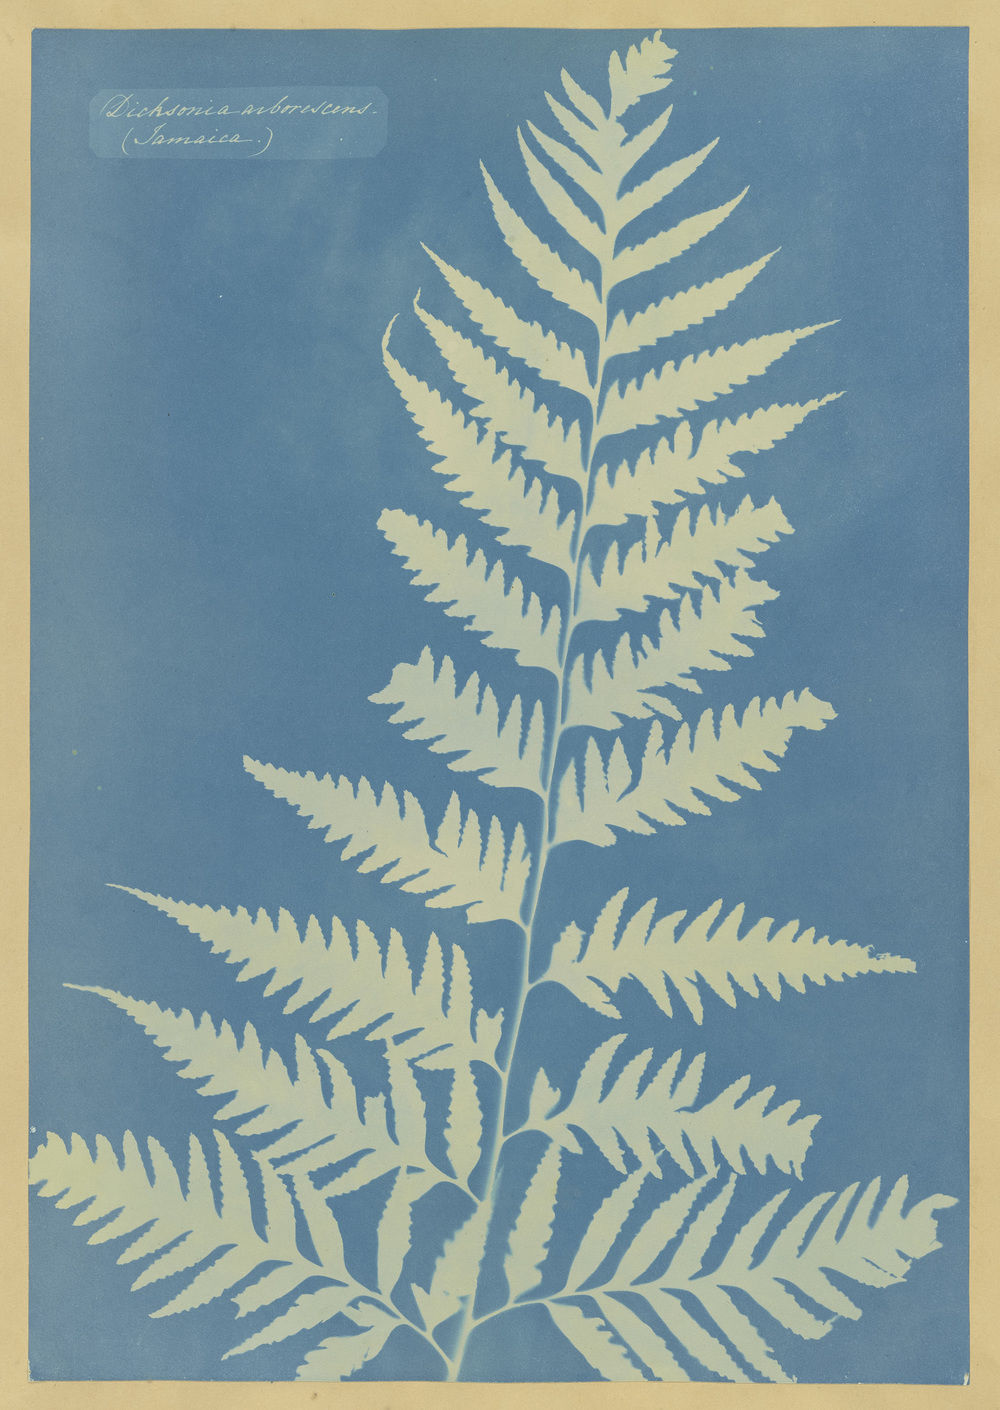 Anna Atkins, Dichsonia arborescens (Jamaica). 1850, Yale University Art Gallery, Gift of George Hopper Fitch, B.A. 1932.